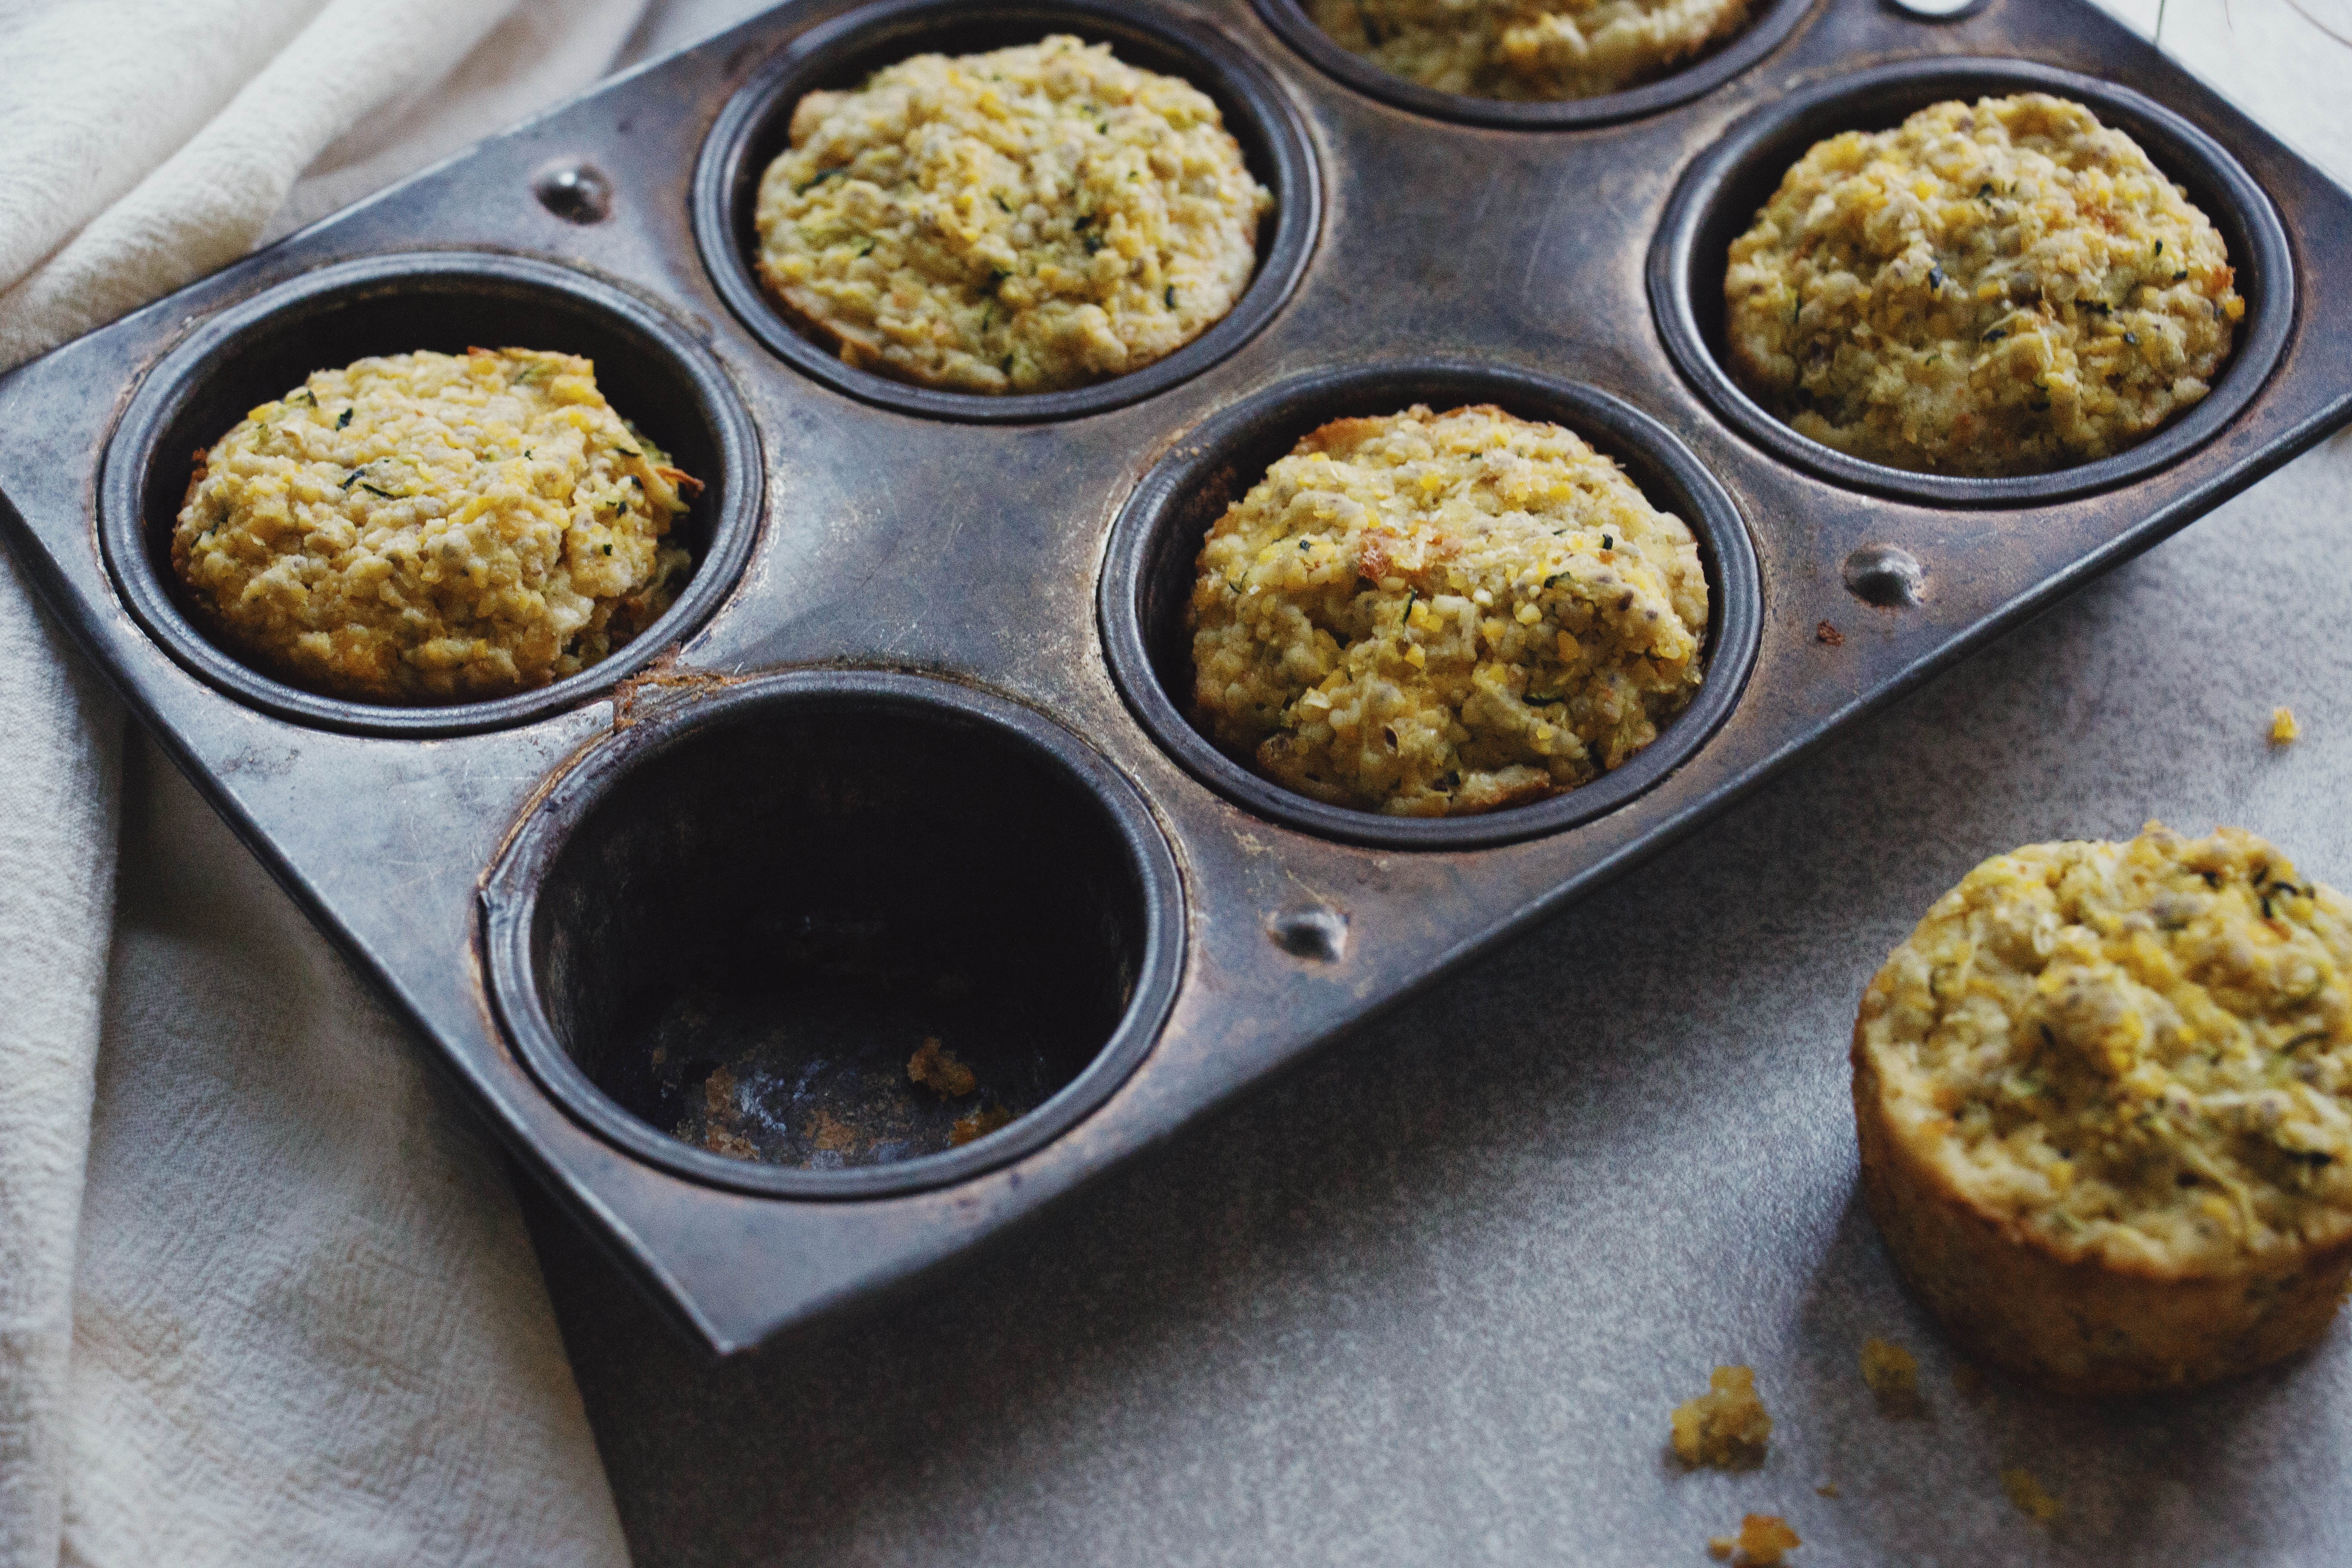 Cornbread Muffins with Zucchini and Chili Flakes